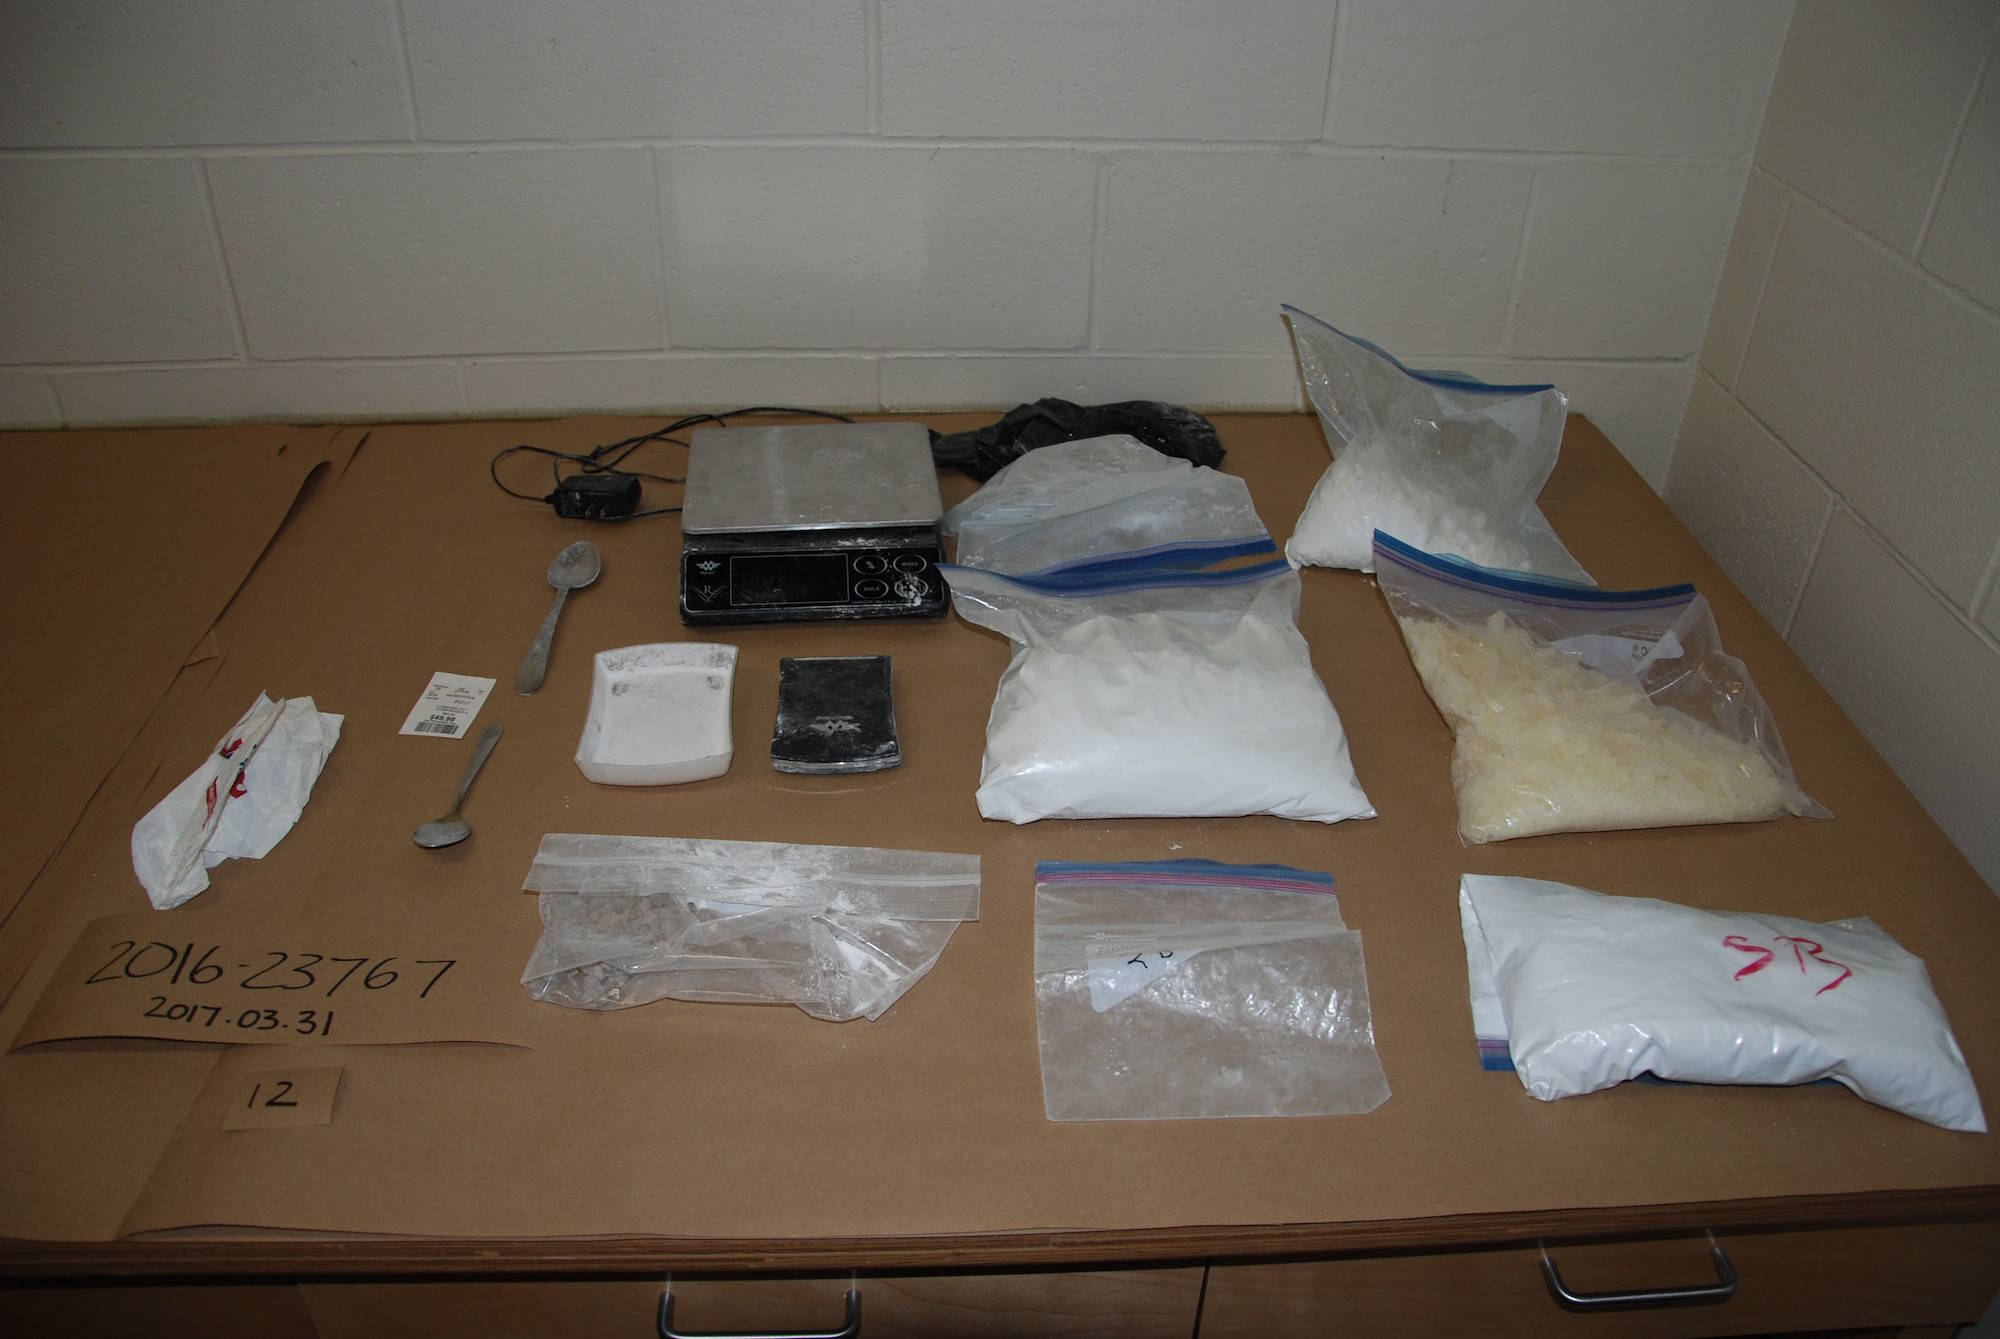 """""""Drugs Seized from DAGLE's Residence. March 30, 2017."""" Image credit: Kamloops RCMP"""